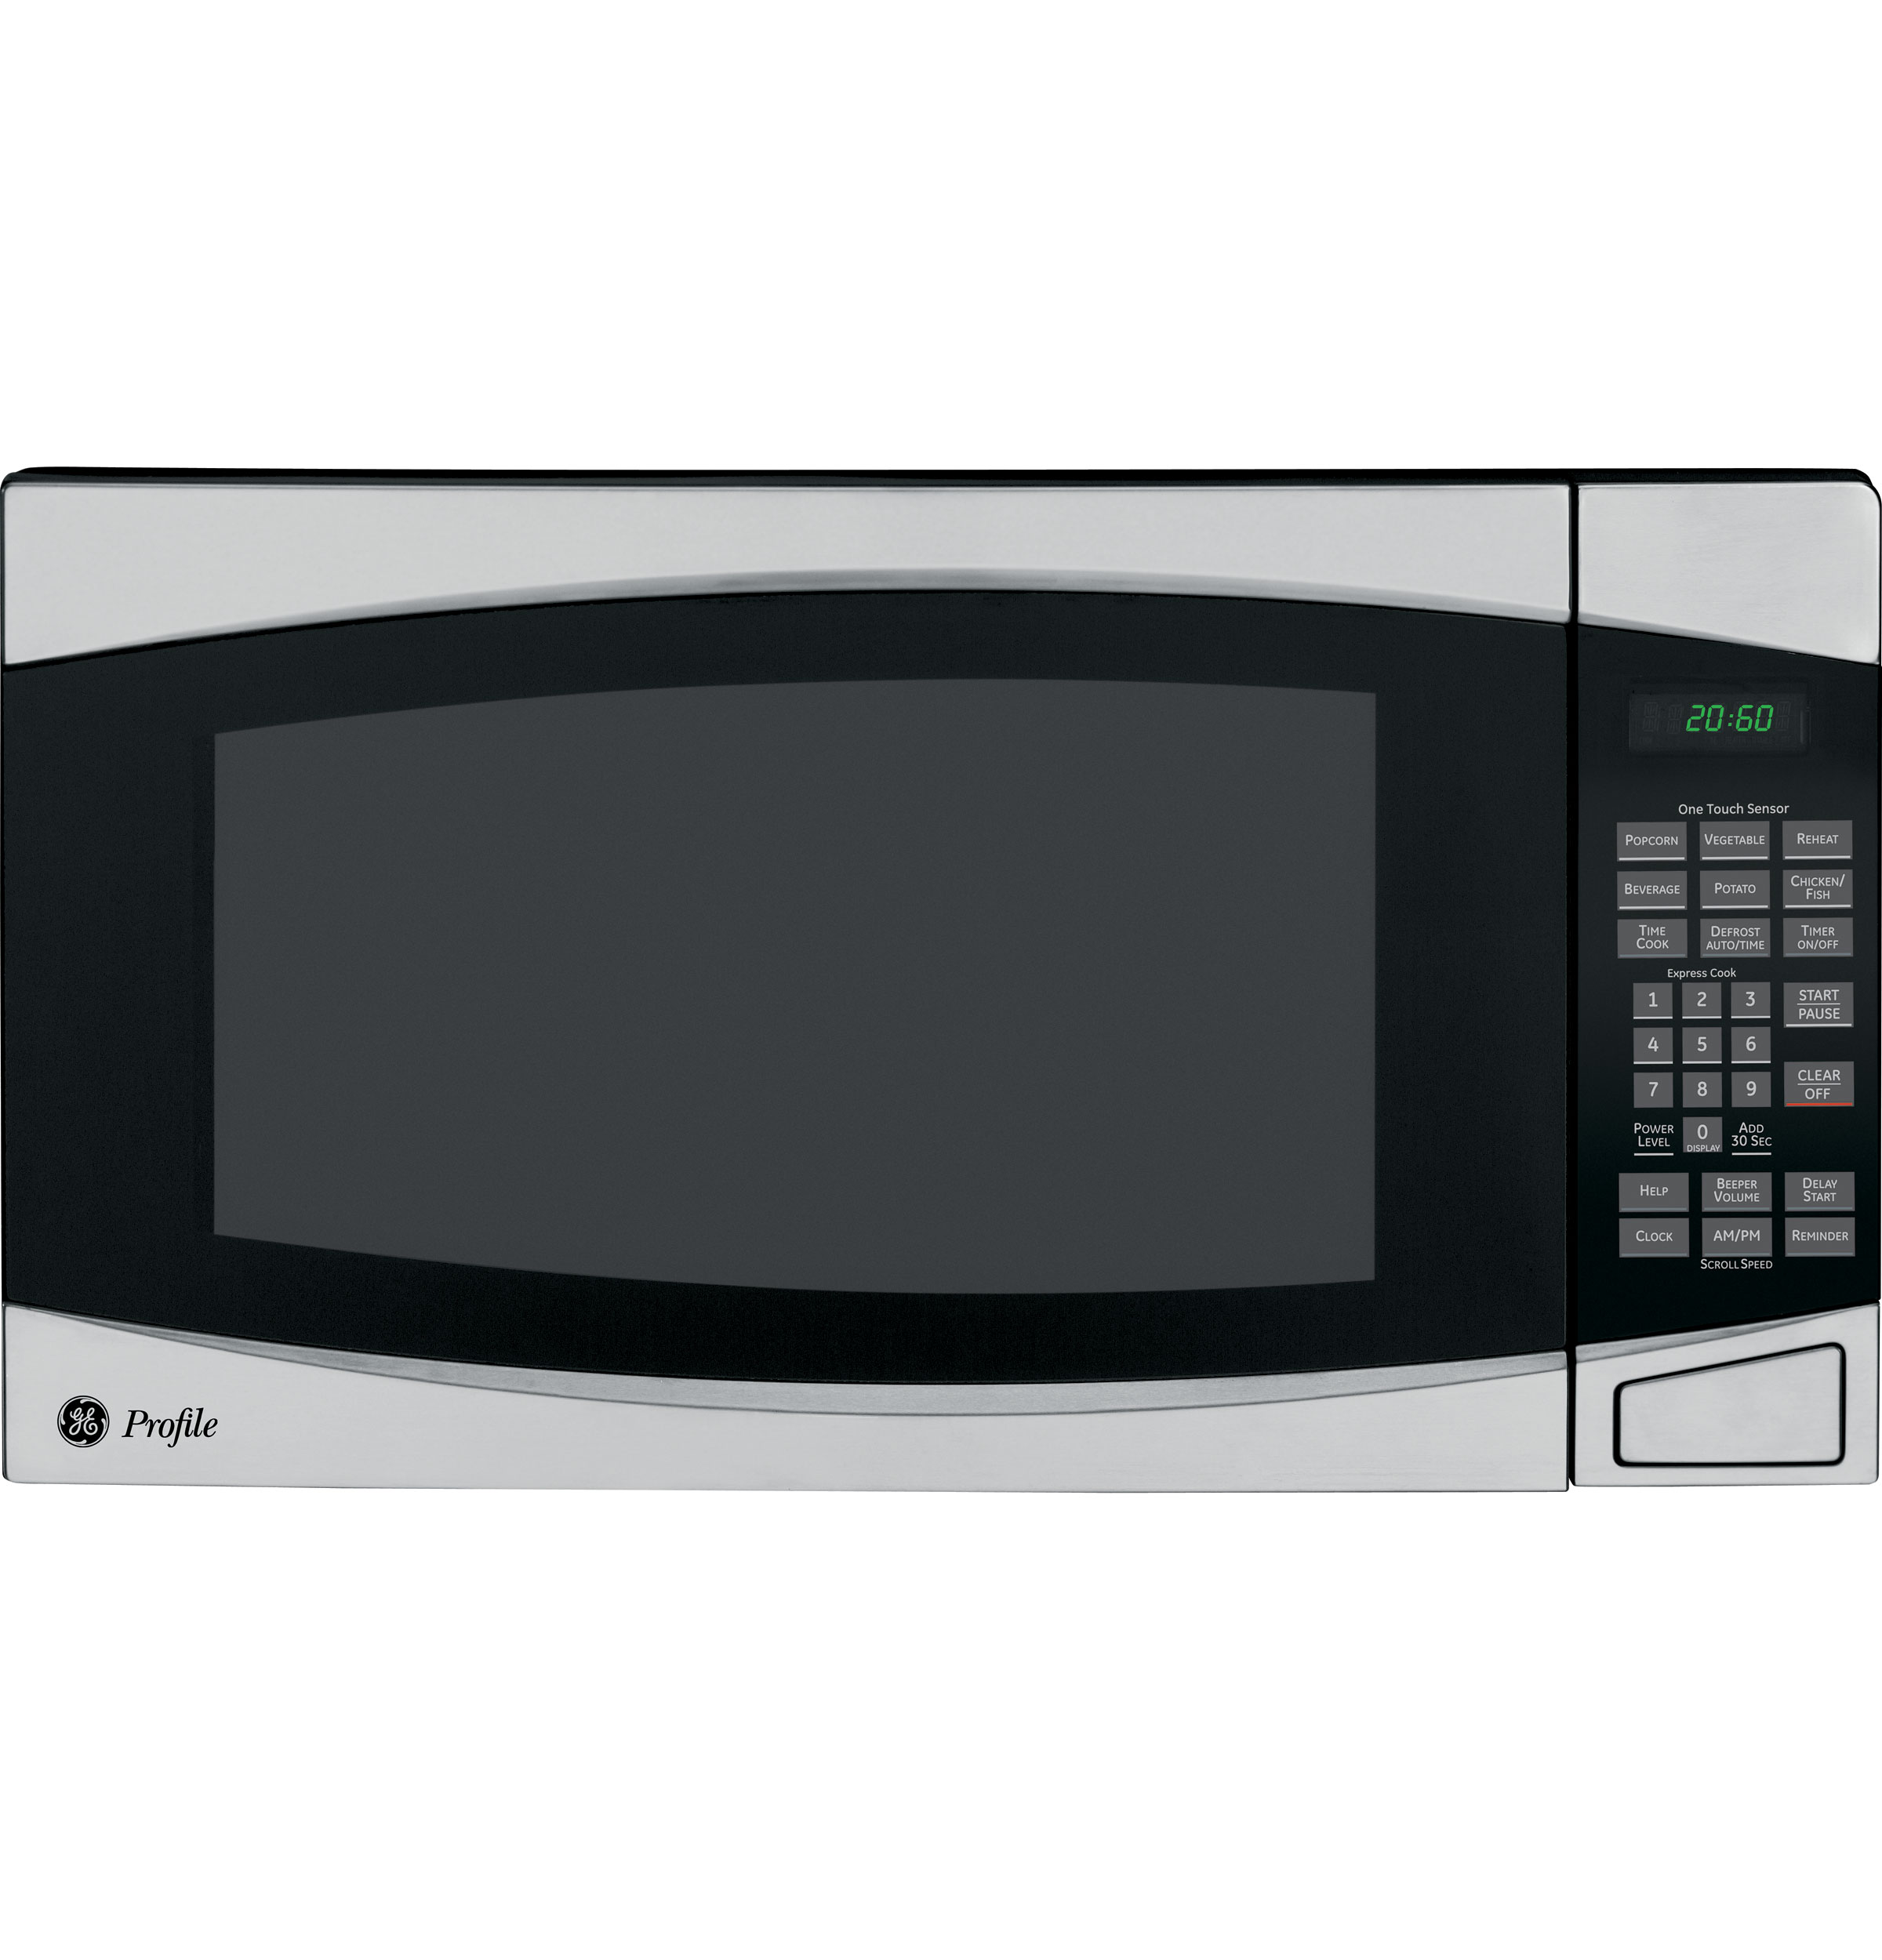 Countertop Microwave No Turntable : GE Profile? 2.0 Cu. Ft. Countertop Microwave Oven PEB2060SMSS GE ...